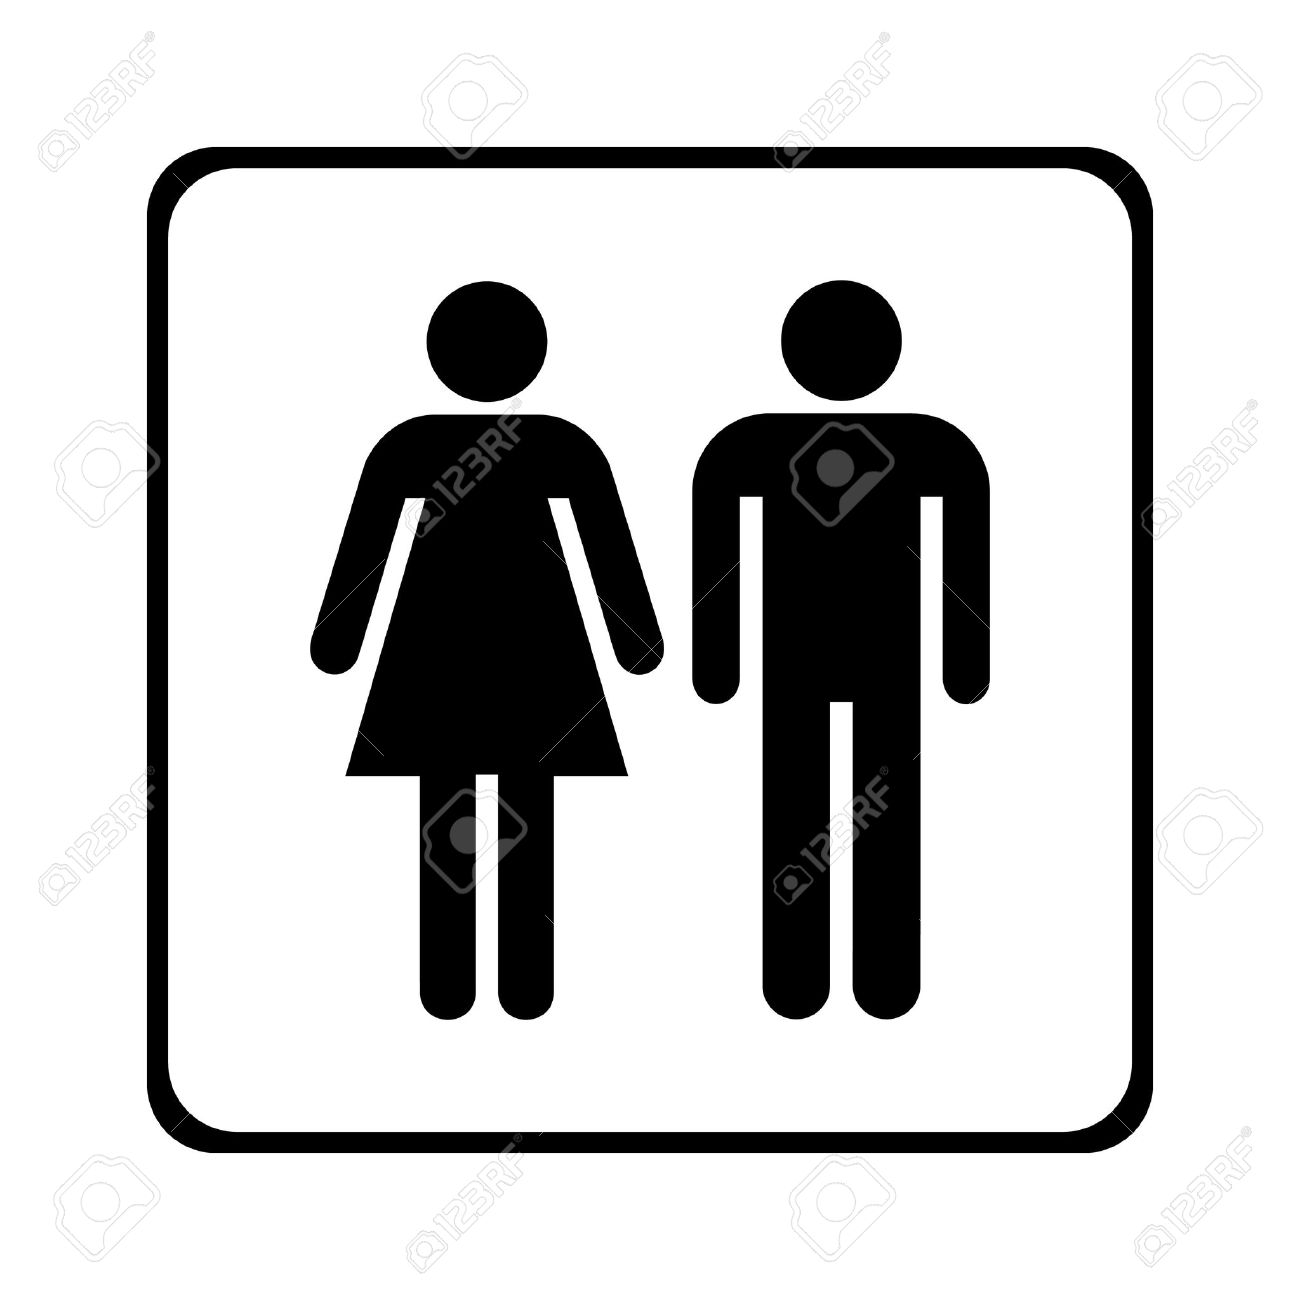 Bathroom Sign Male Vector male and female sign vector royalty free cliparts, vectors, and